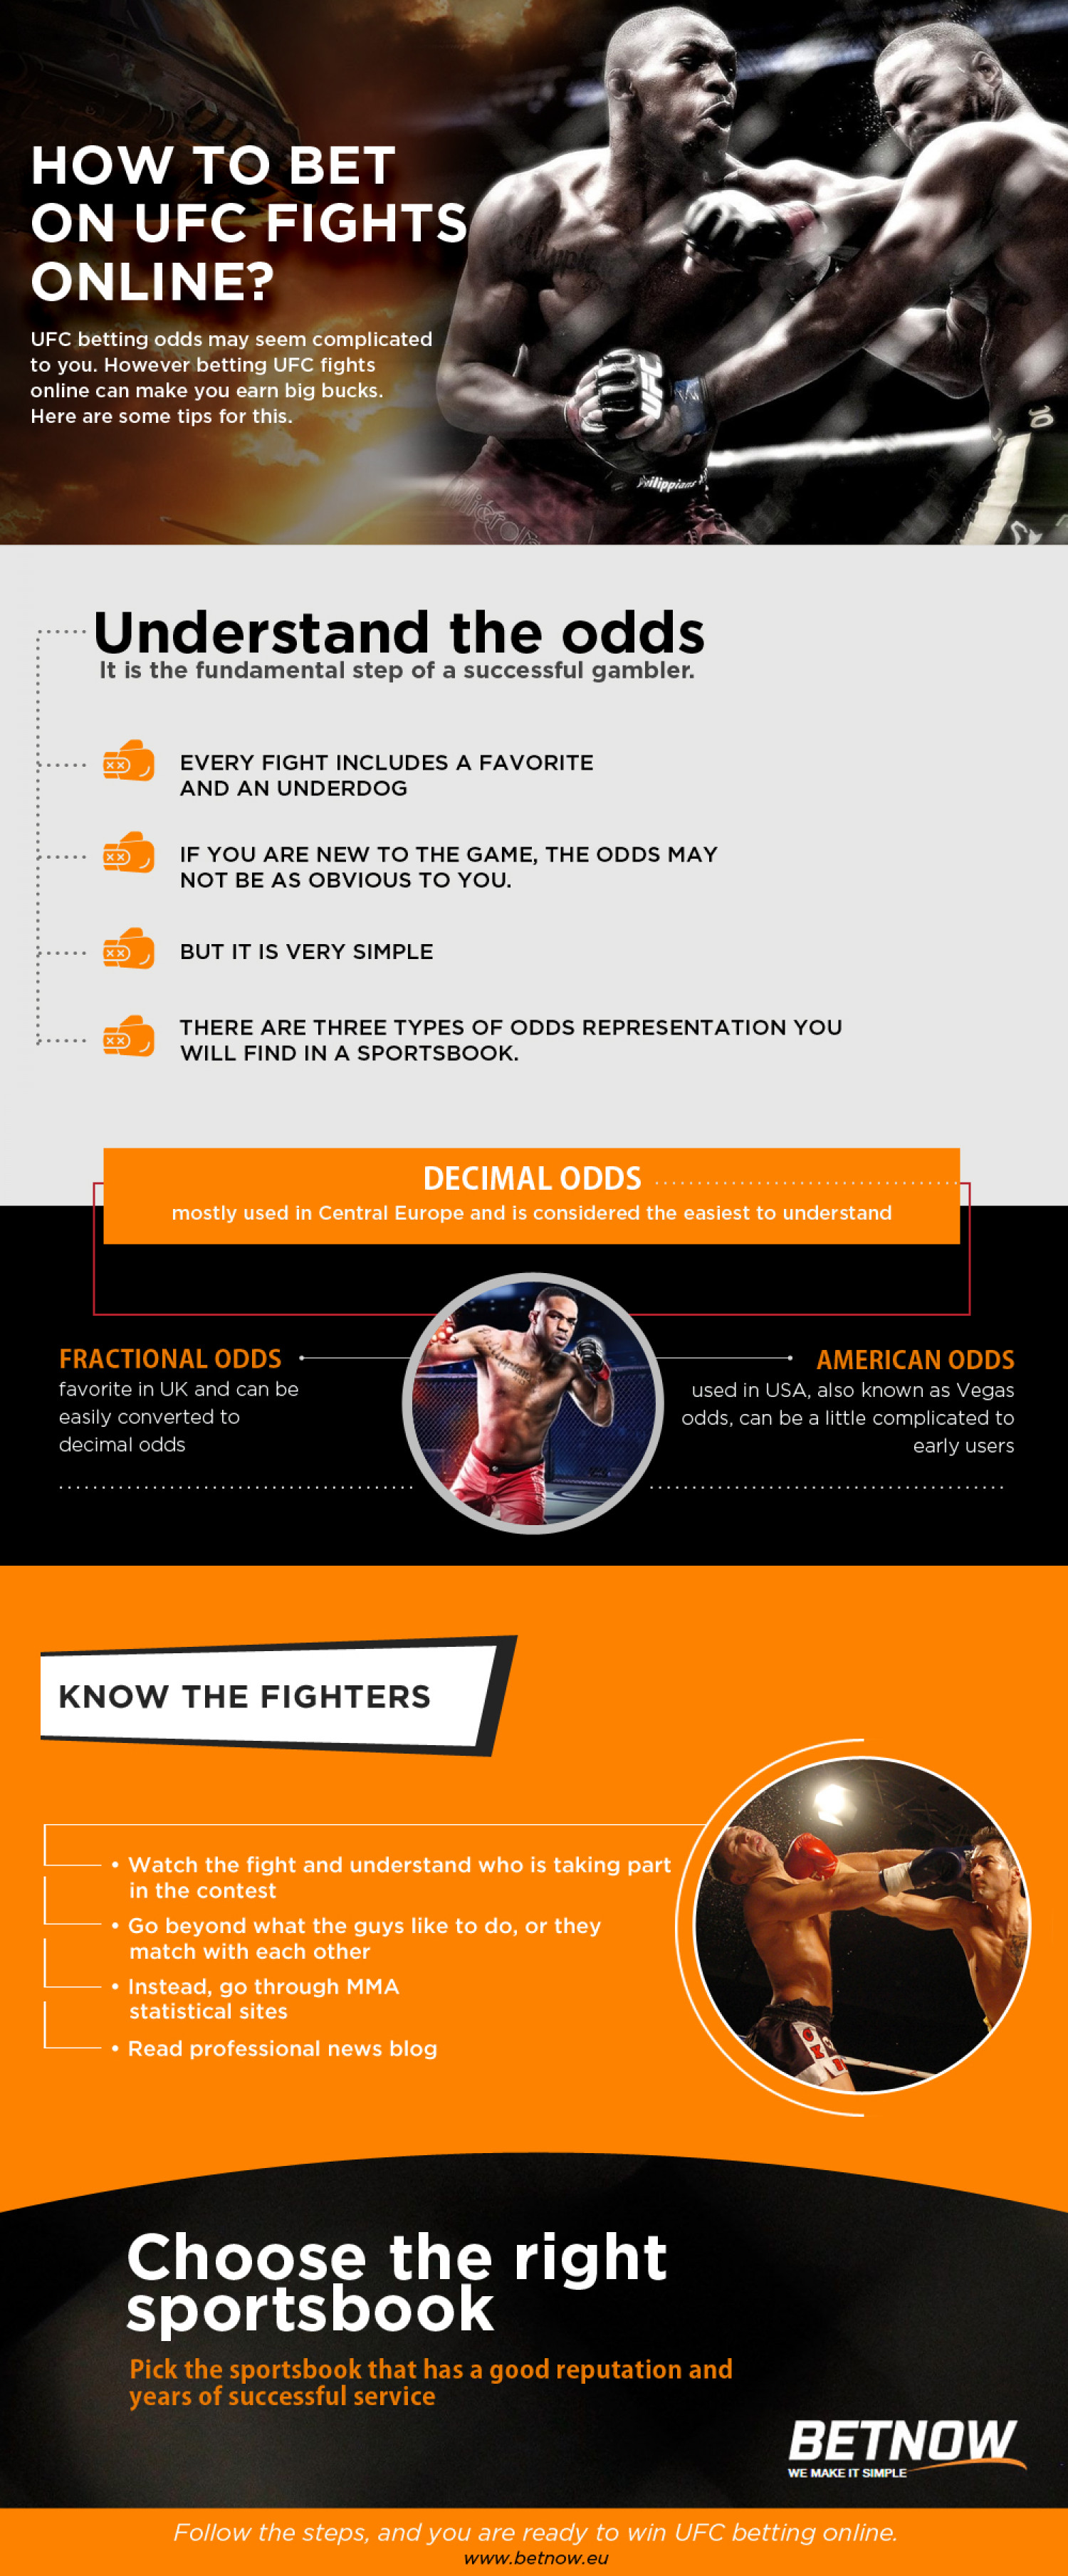 How to bet on UFC fights online Infographic